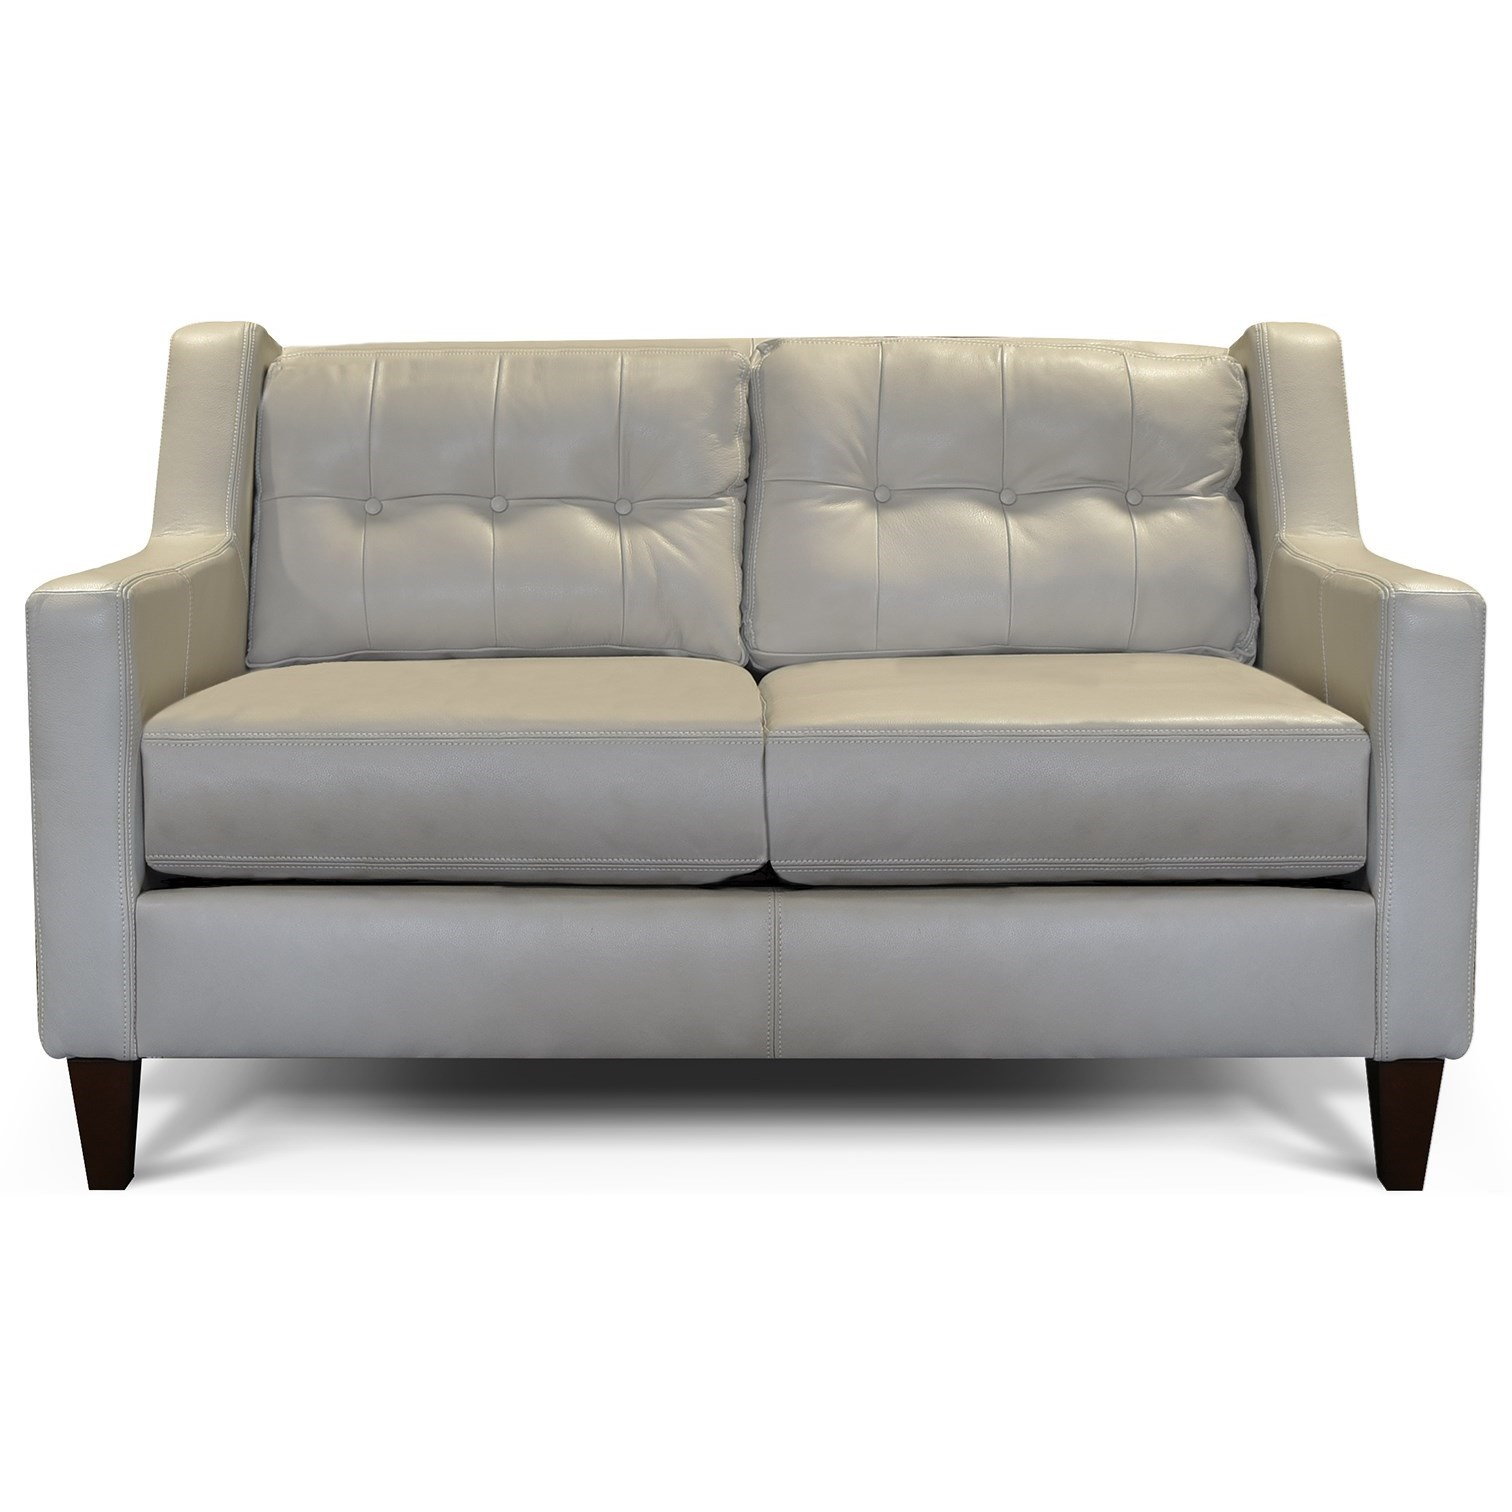 England Brody 6l06al Tufted Back Loveseat Coconis Furniture Mattress 1st Love Seats